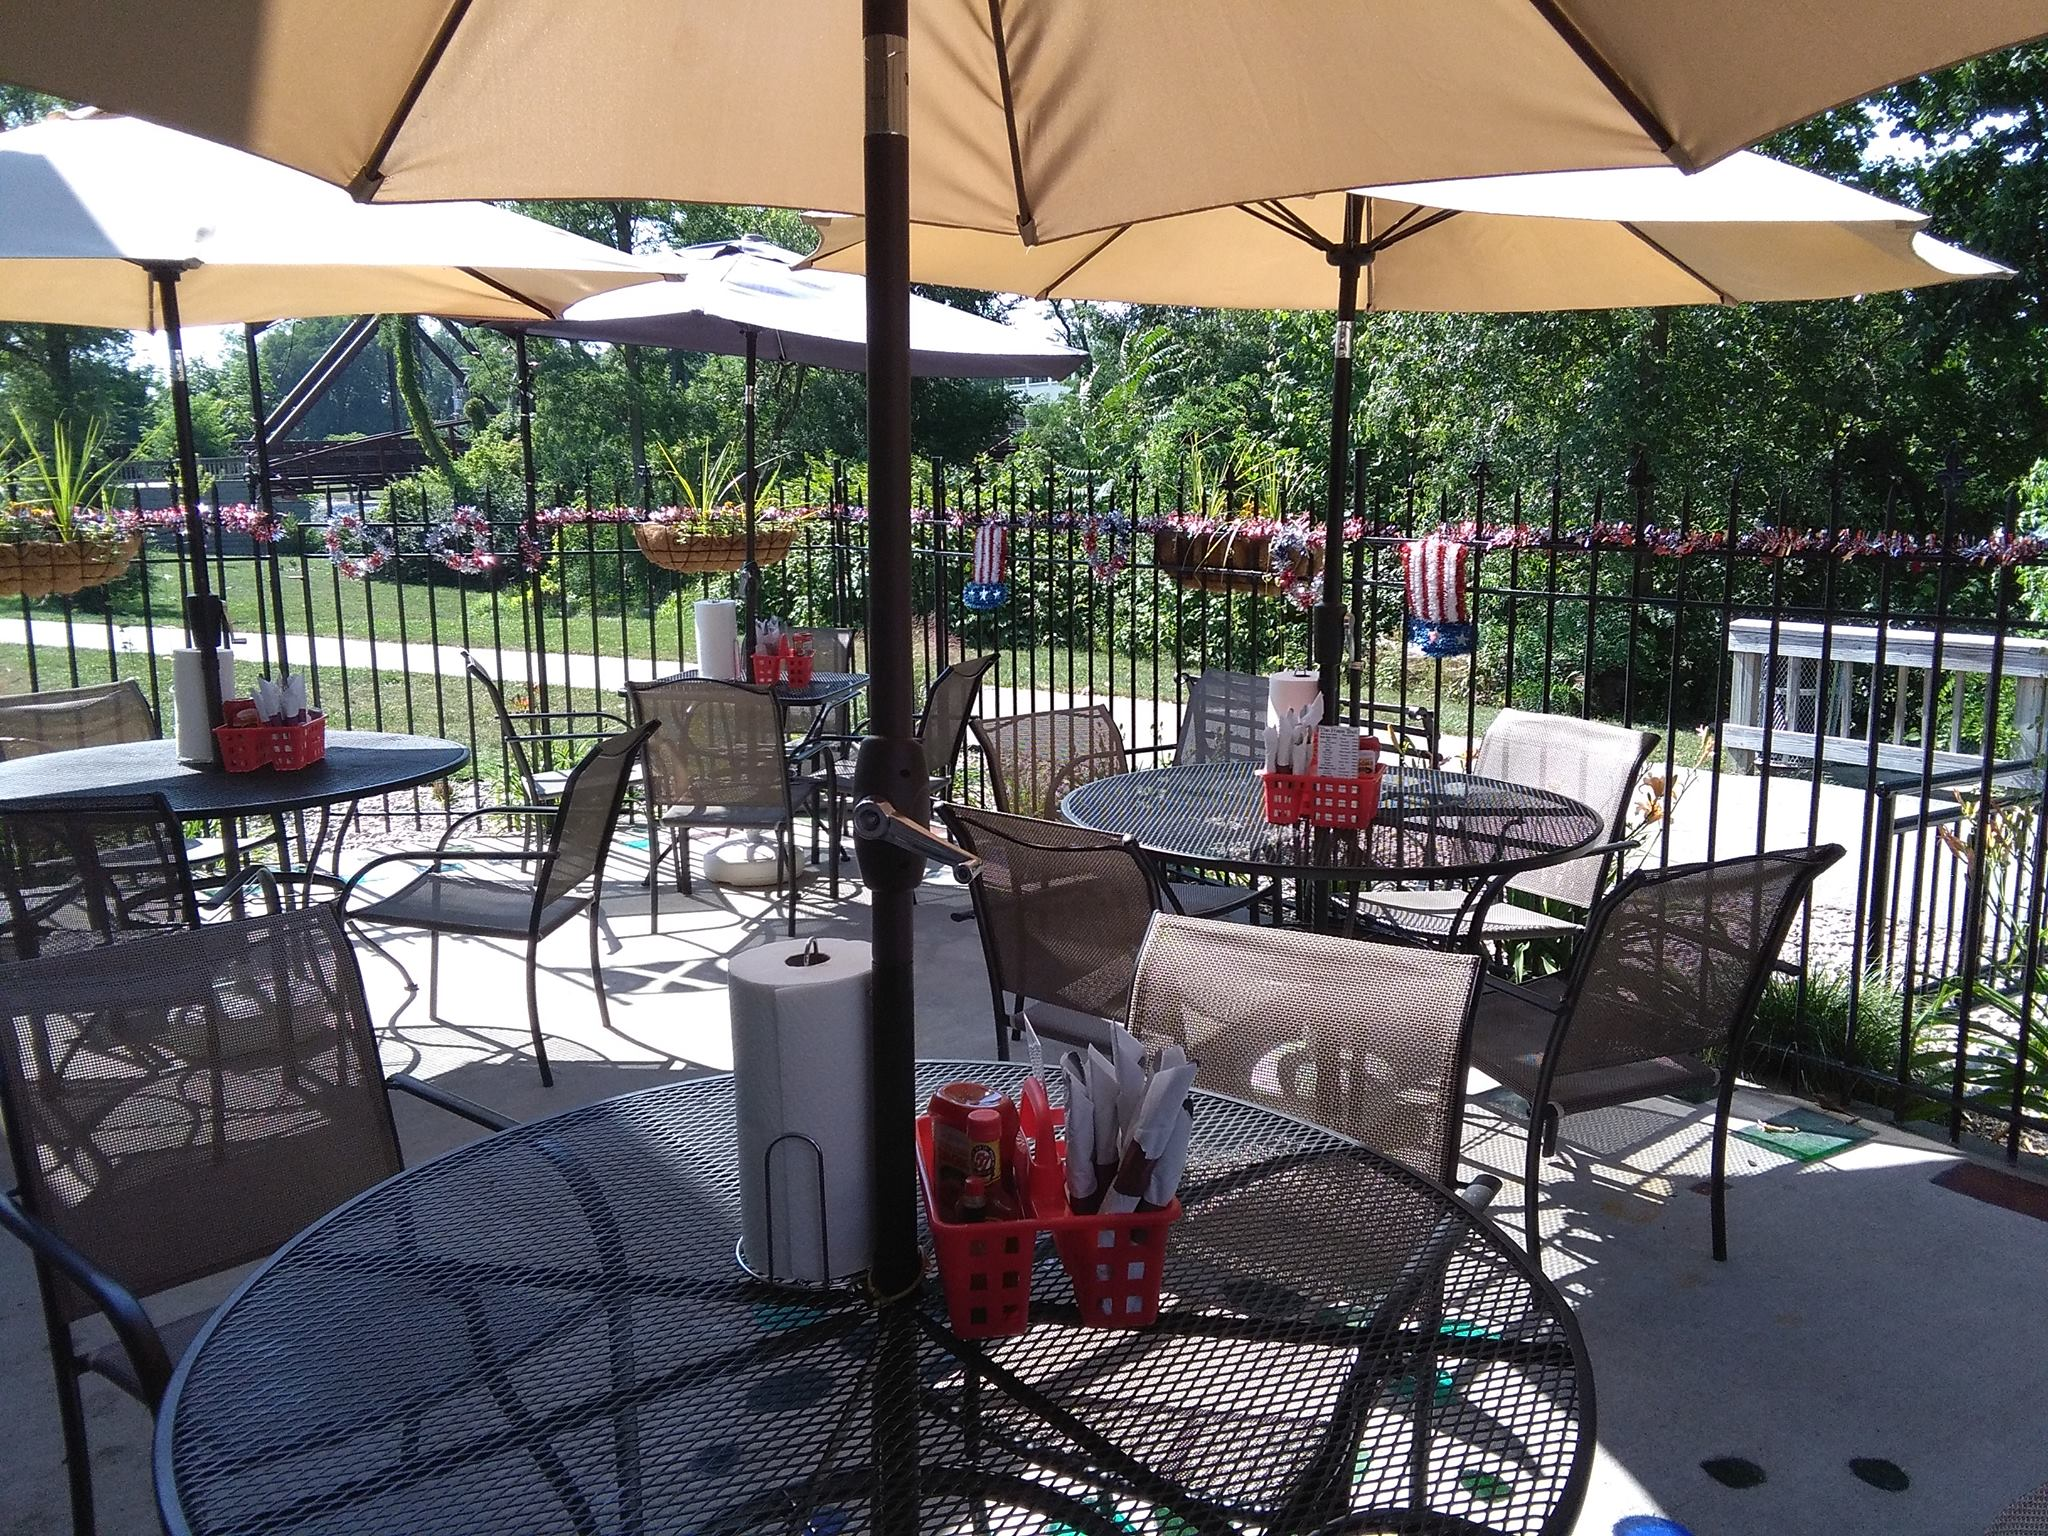 Foxes Trail patio seating